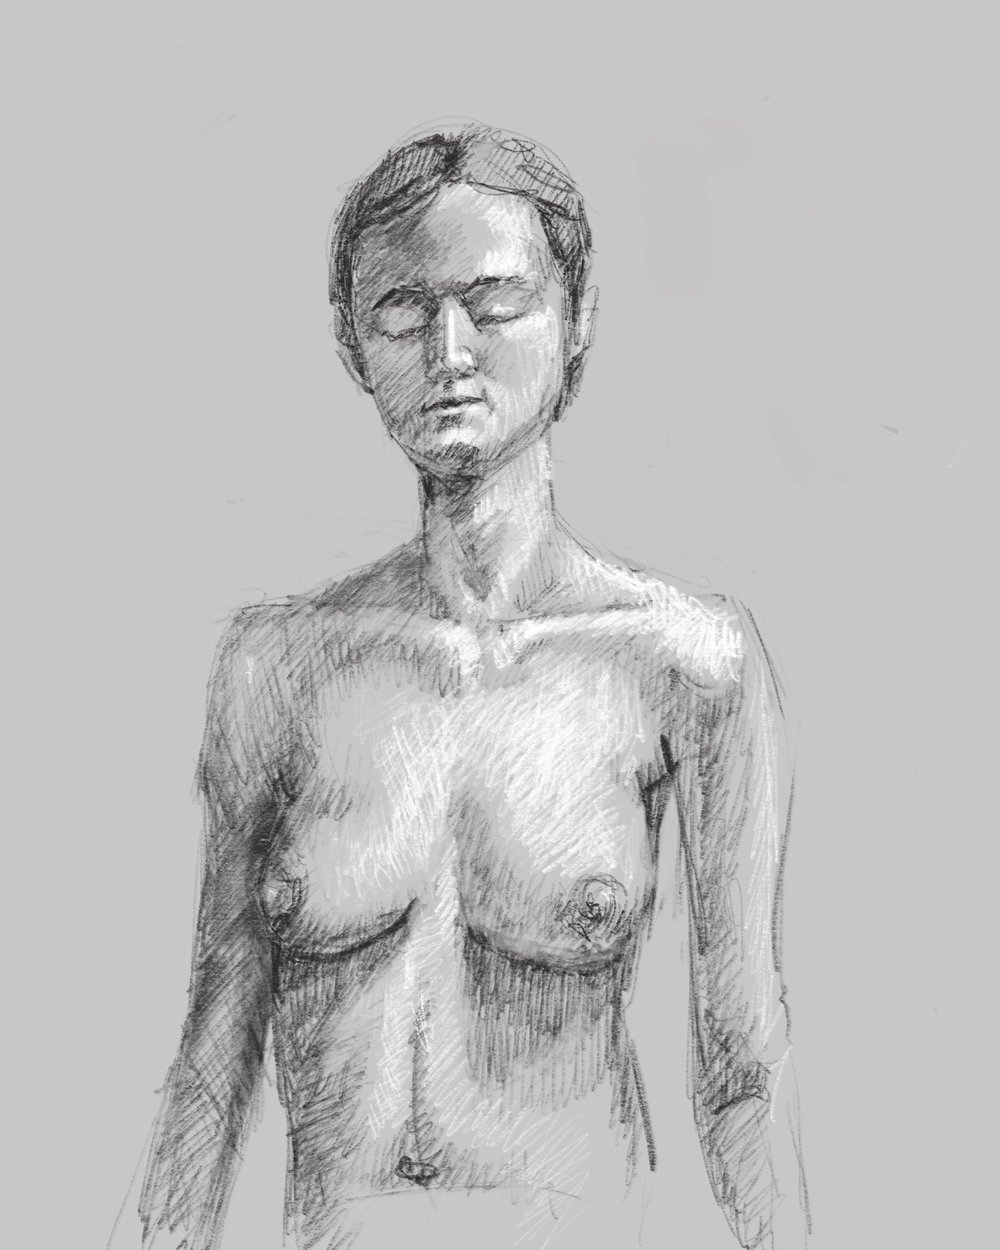 Life drawing in ProCreate using the